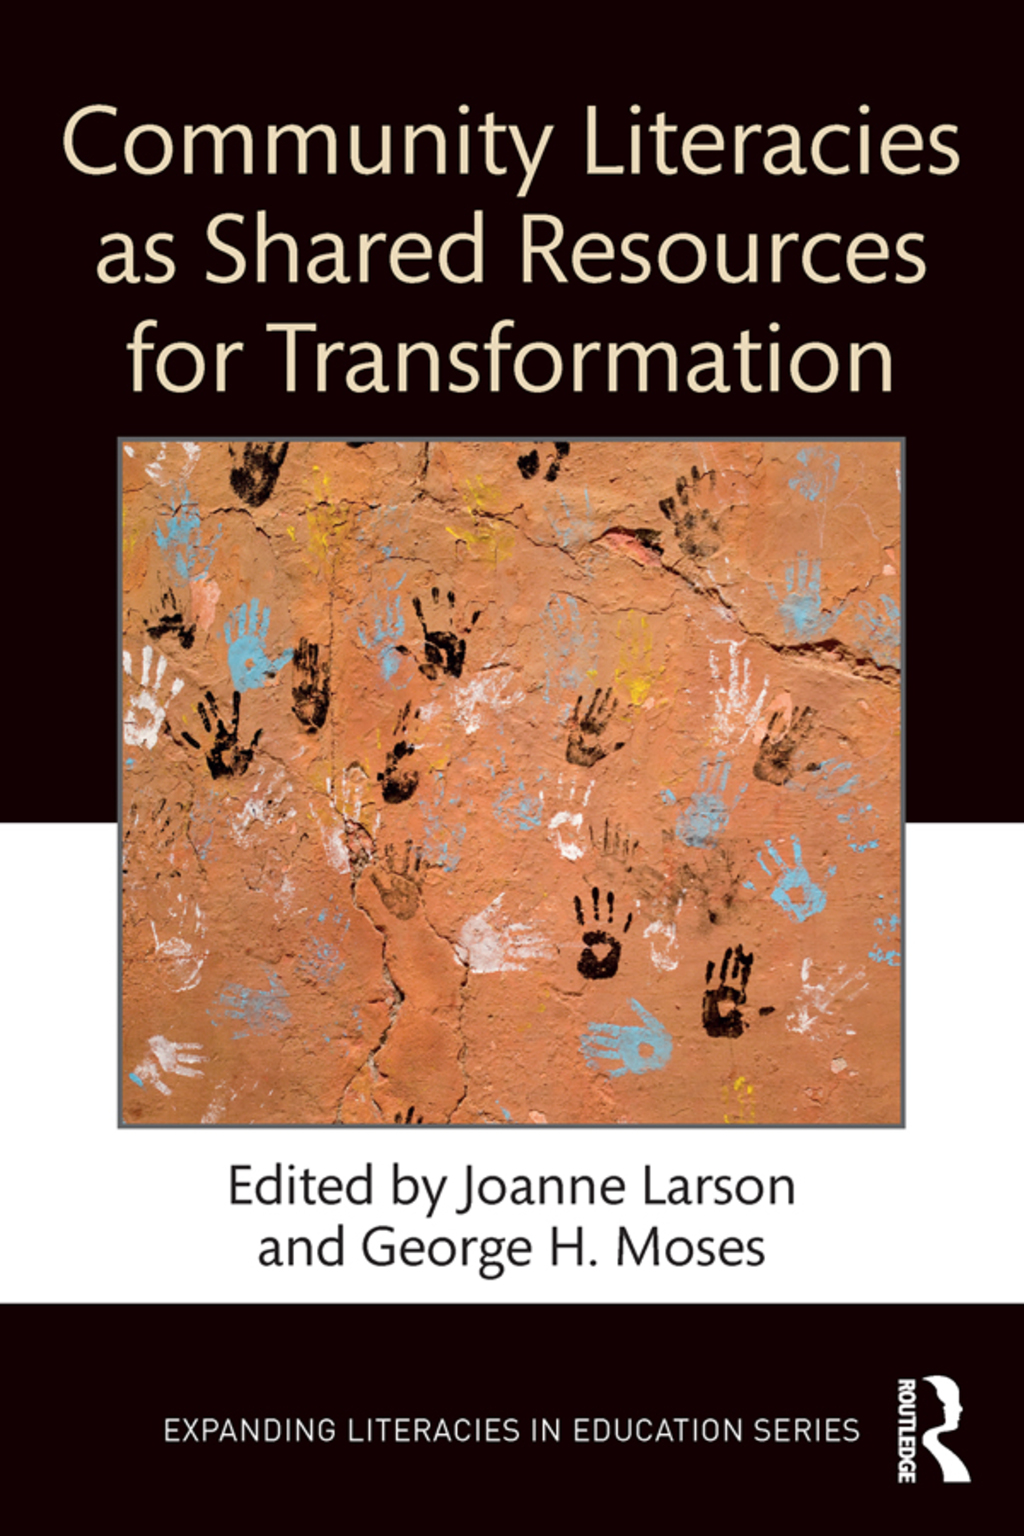 Community Literacies as Shared Resources for Transformation (eBook Rental)